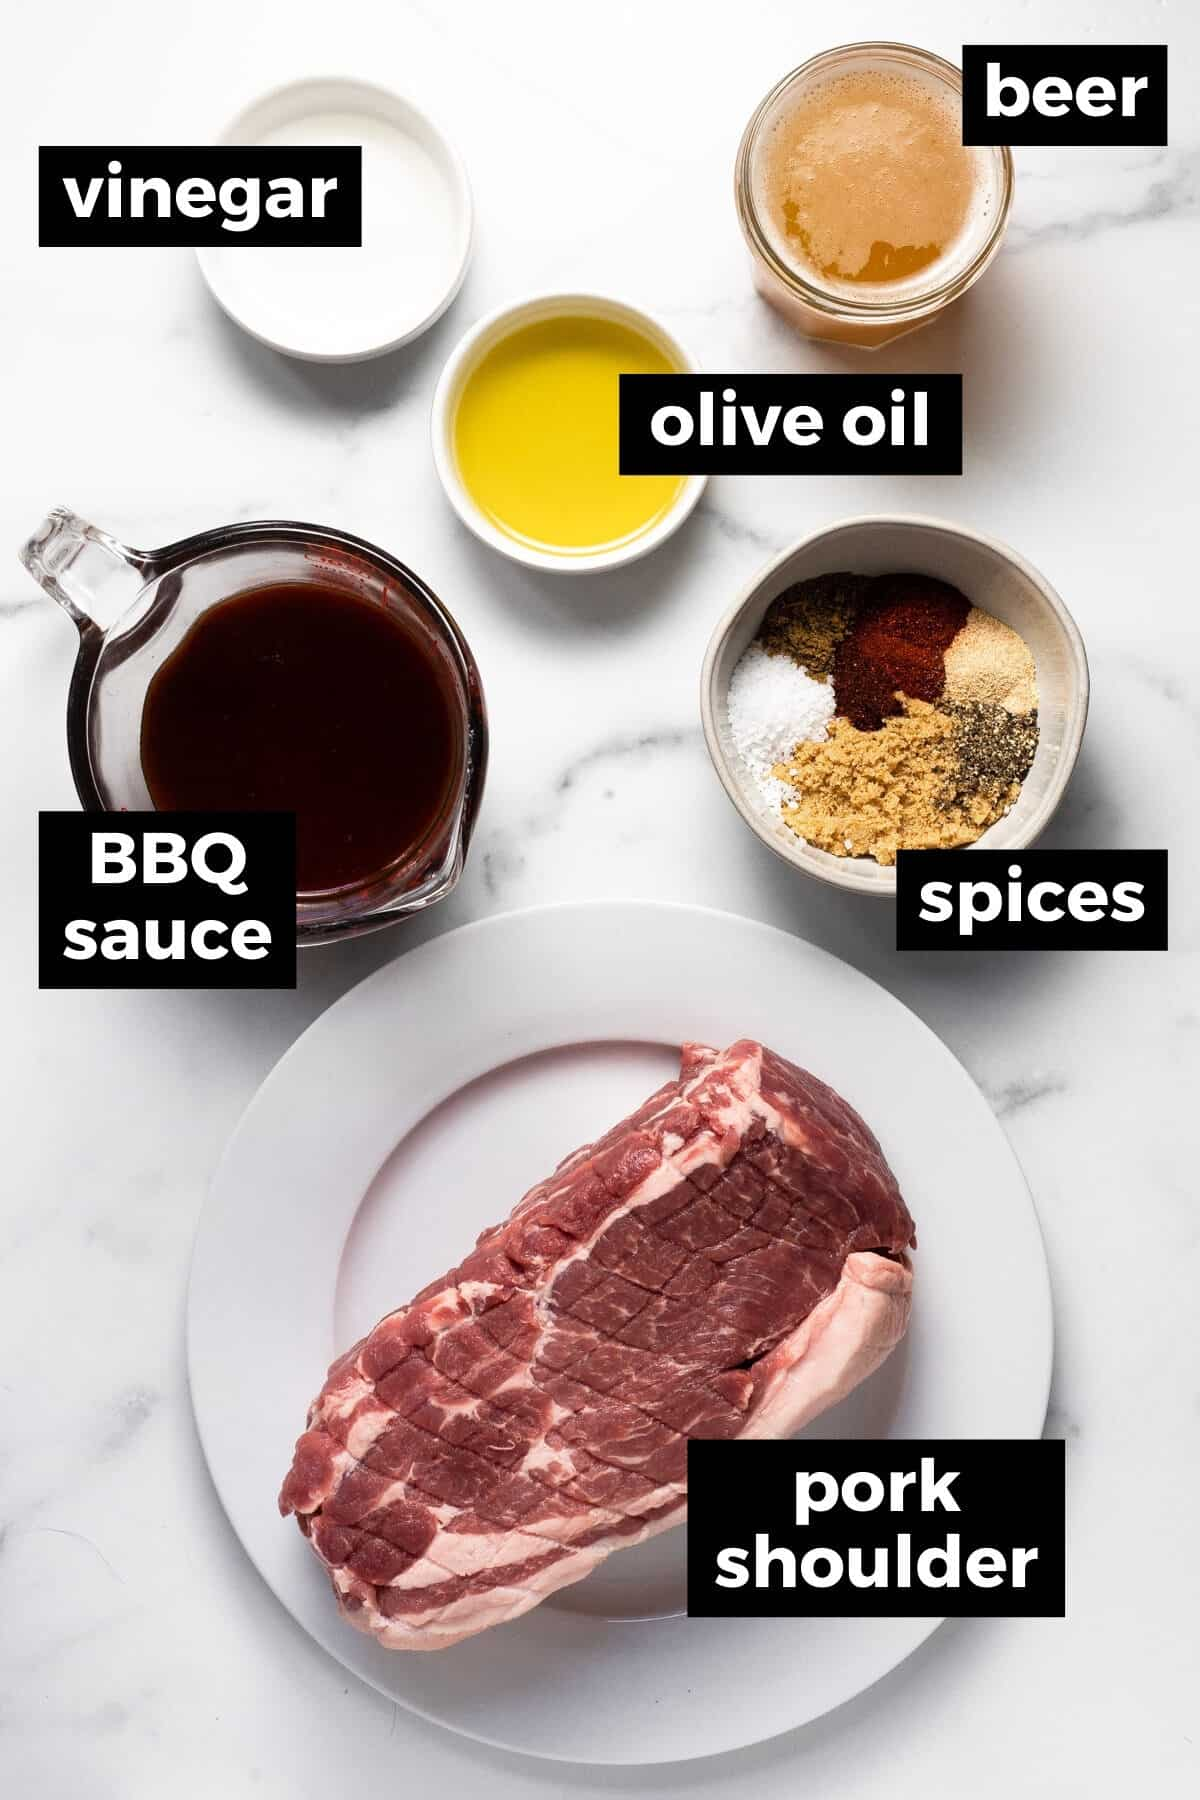 White marble counter top with ingredients to make pulled pork burgers